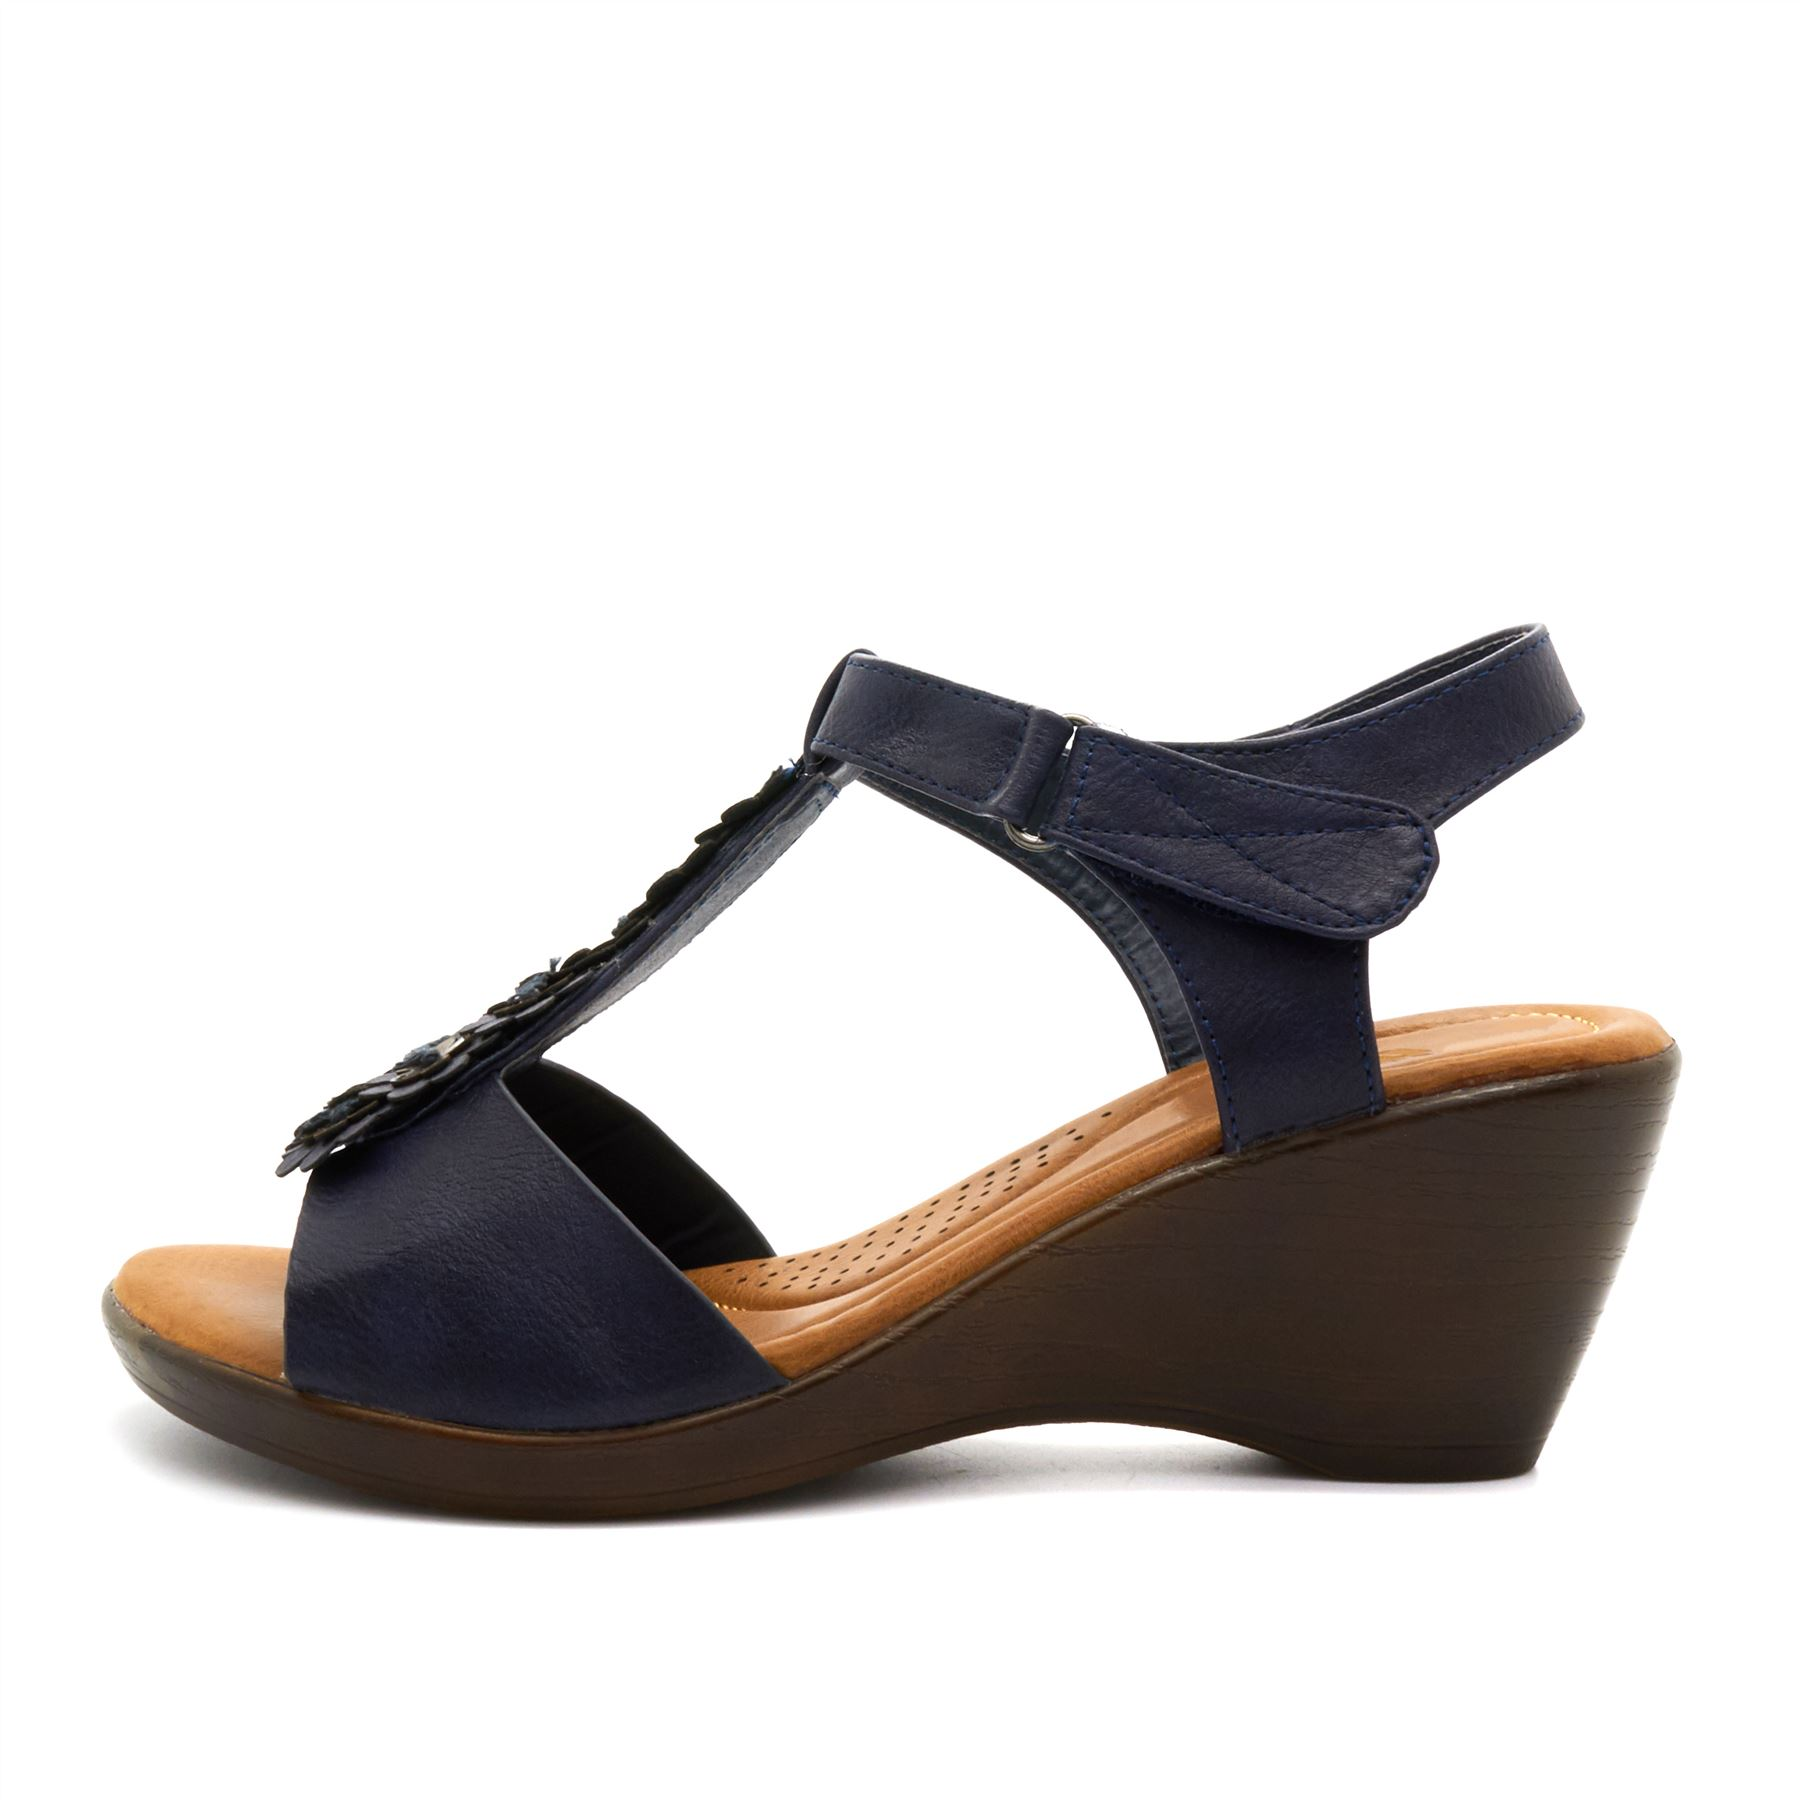 Shop a great selection of Women's Wedges at Nordstrom Rack. Find designer Women's Wedges up to 70% off and get free shipping on orders over $